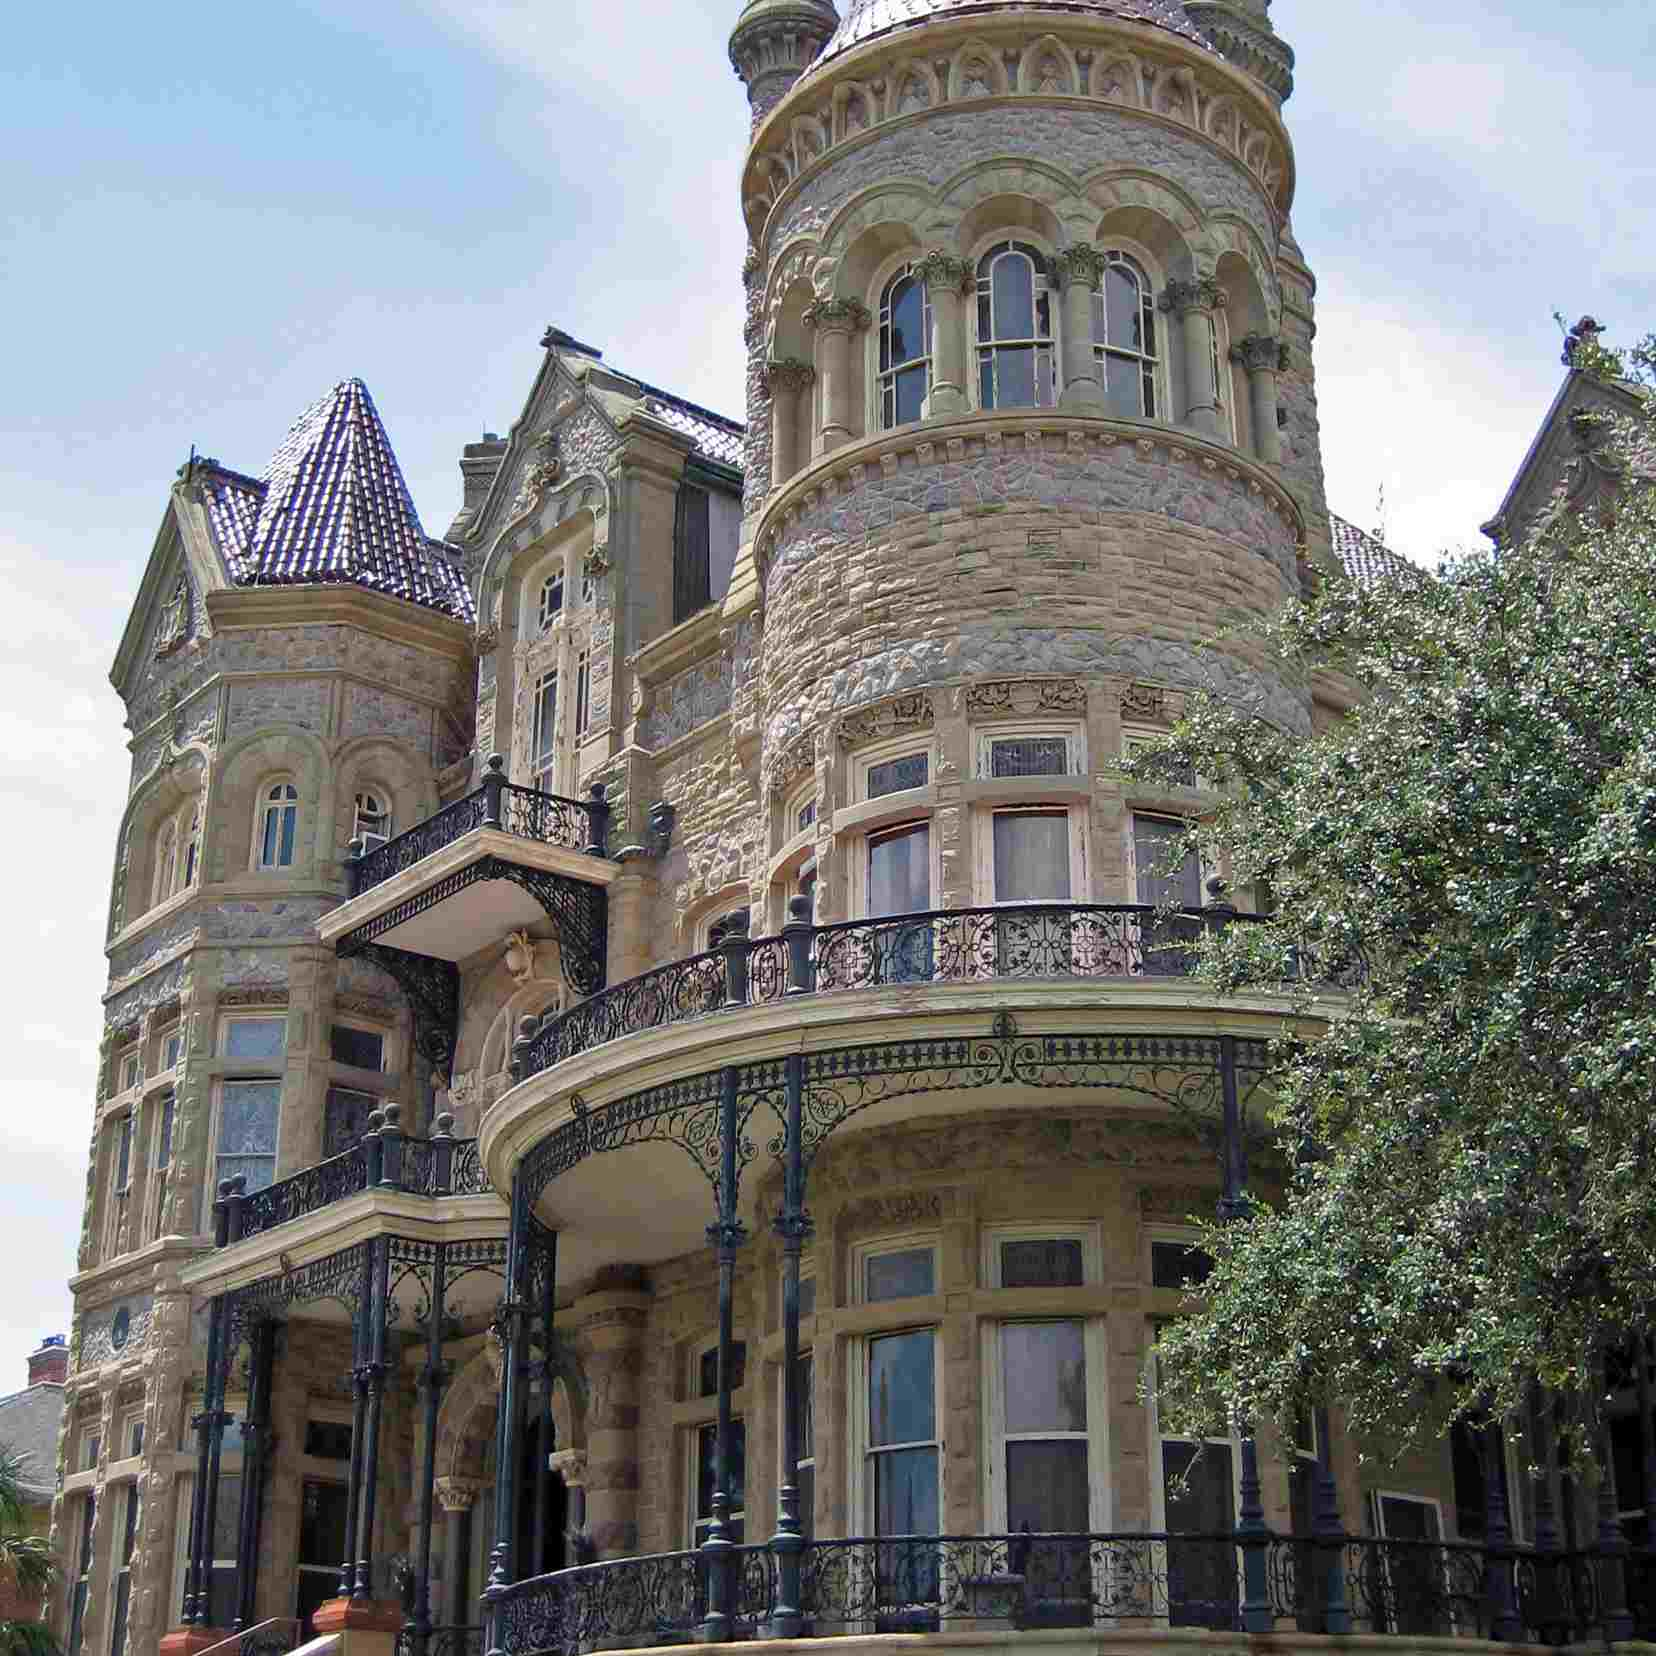 """""""Bishops Palace, Galveston"""" by Dana Smith is licensed under CC BY 2.0"""